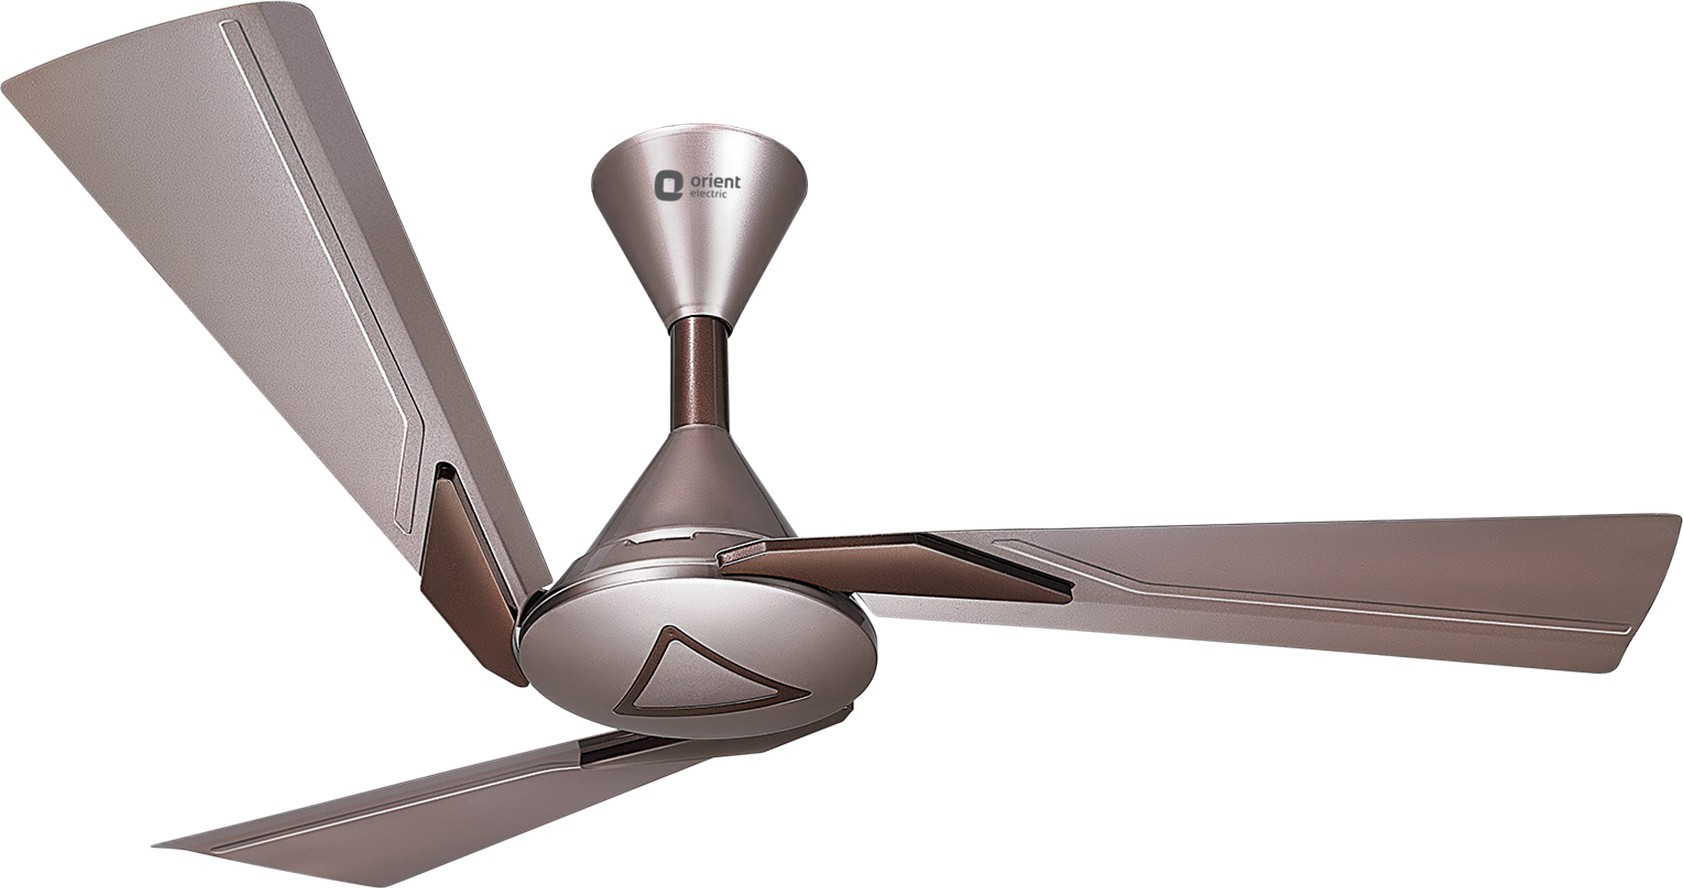 orient orina n1200 mm 3 blade ceiling fan price in india 26